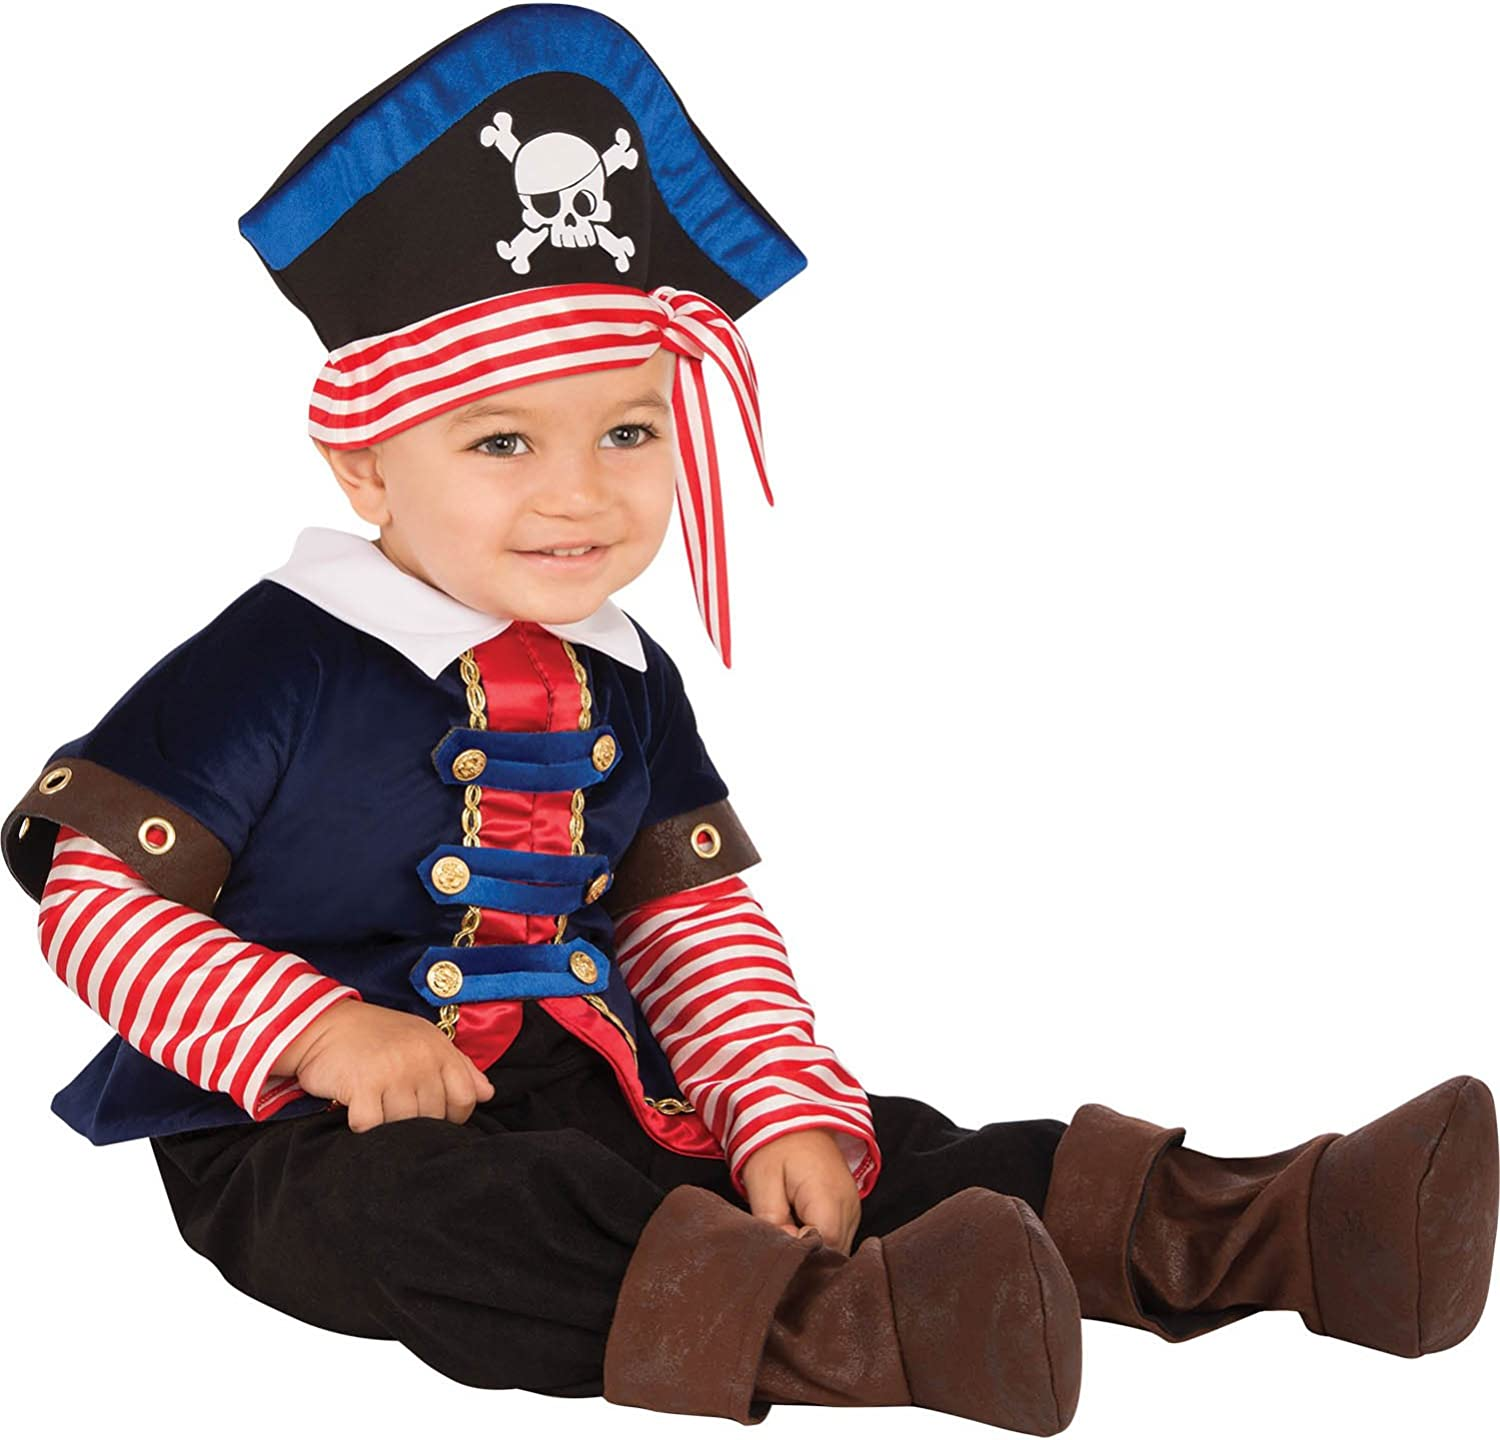 COSLAND Infant Baby Boys Caribbean Pirate Halloween Costume